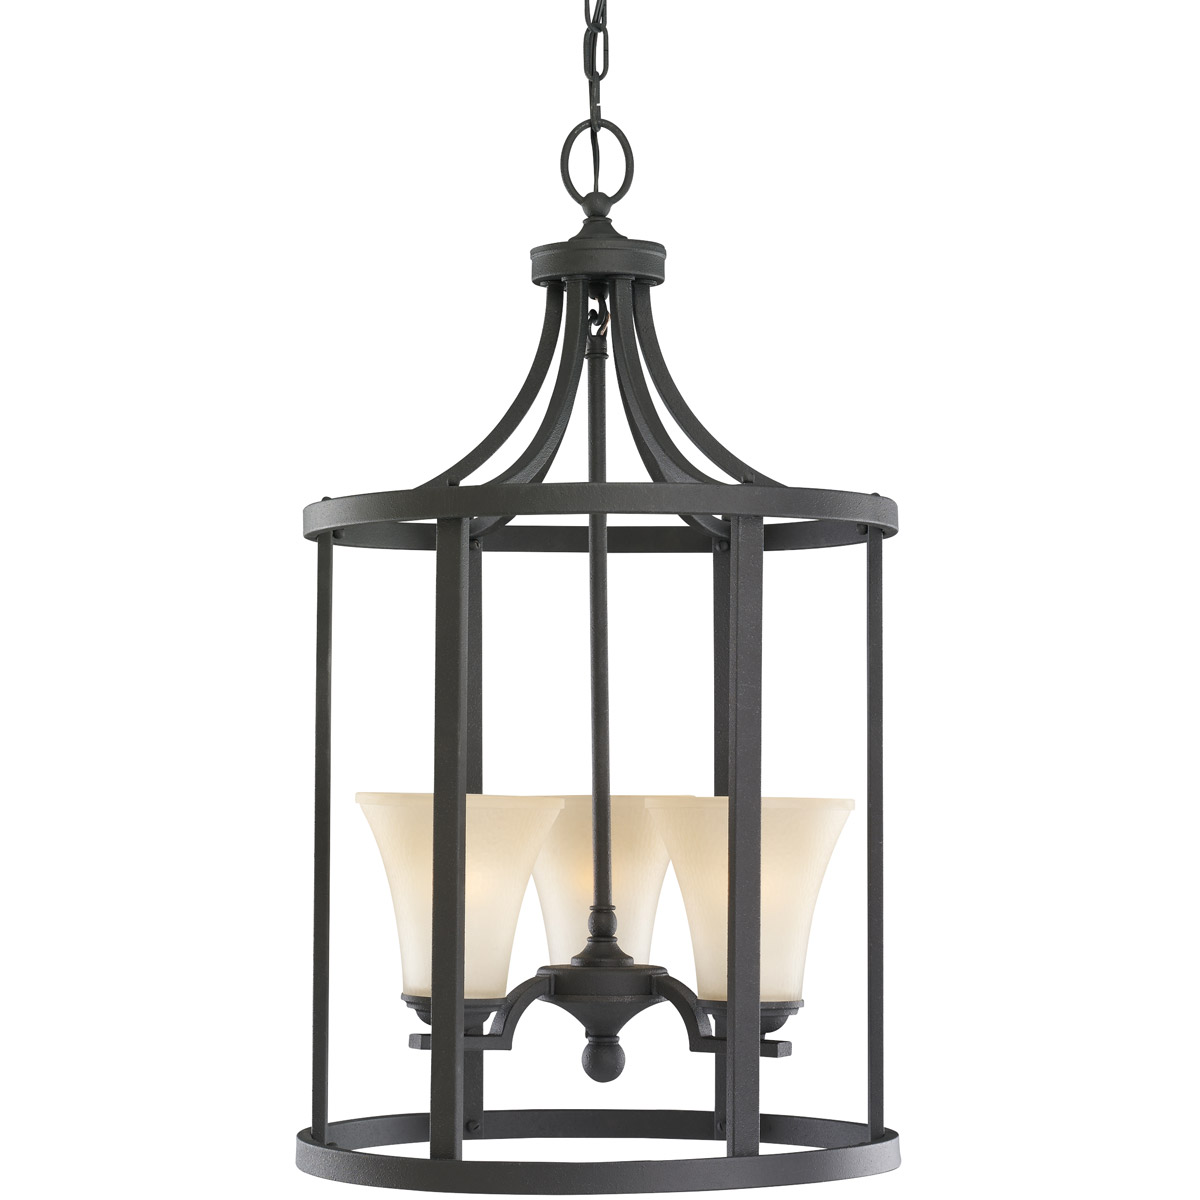 Sea Gull Lighting Somerton 3 Light Pendant in Blacksmith 51375-839 photo